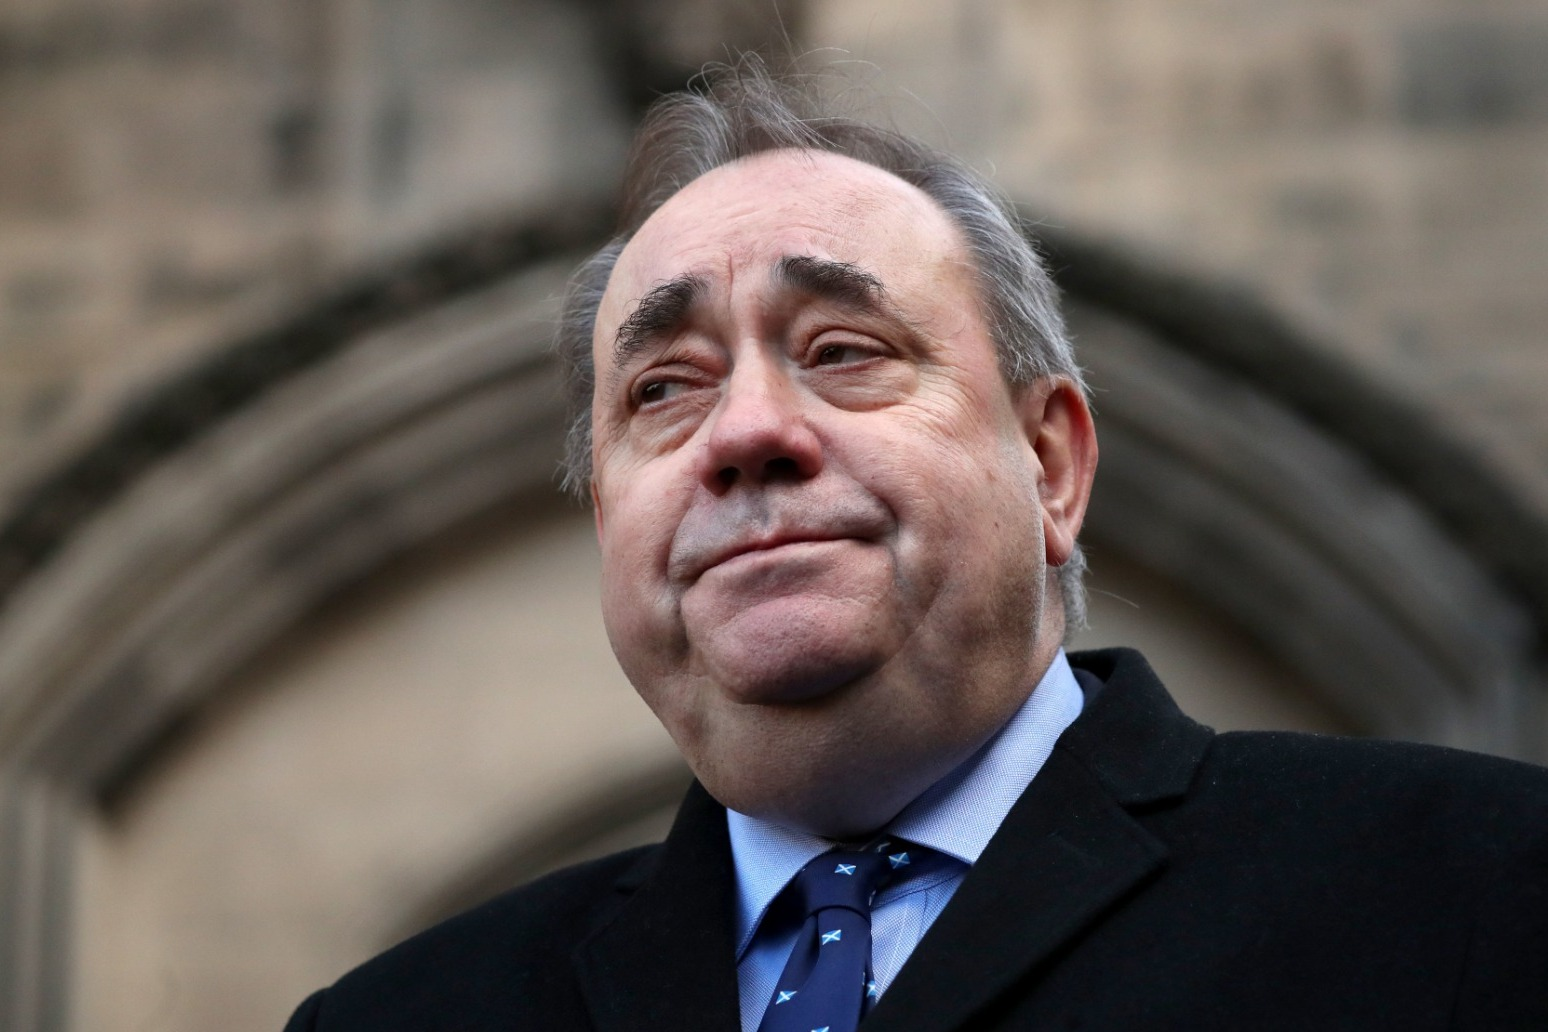 SALMOND TO APPEAR IN COURT ON SEXUAL ASSAULT AND ATTEMPTED RAPE CHARGES